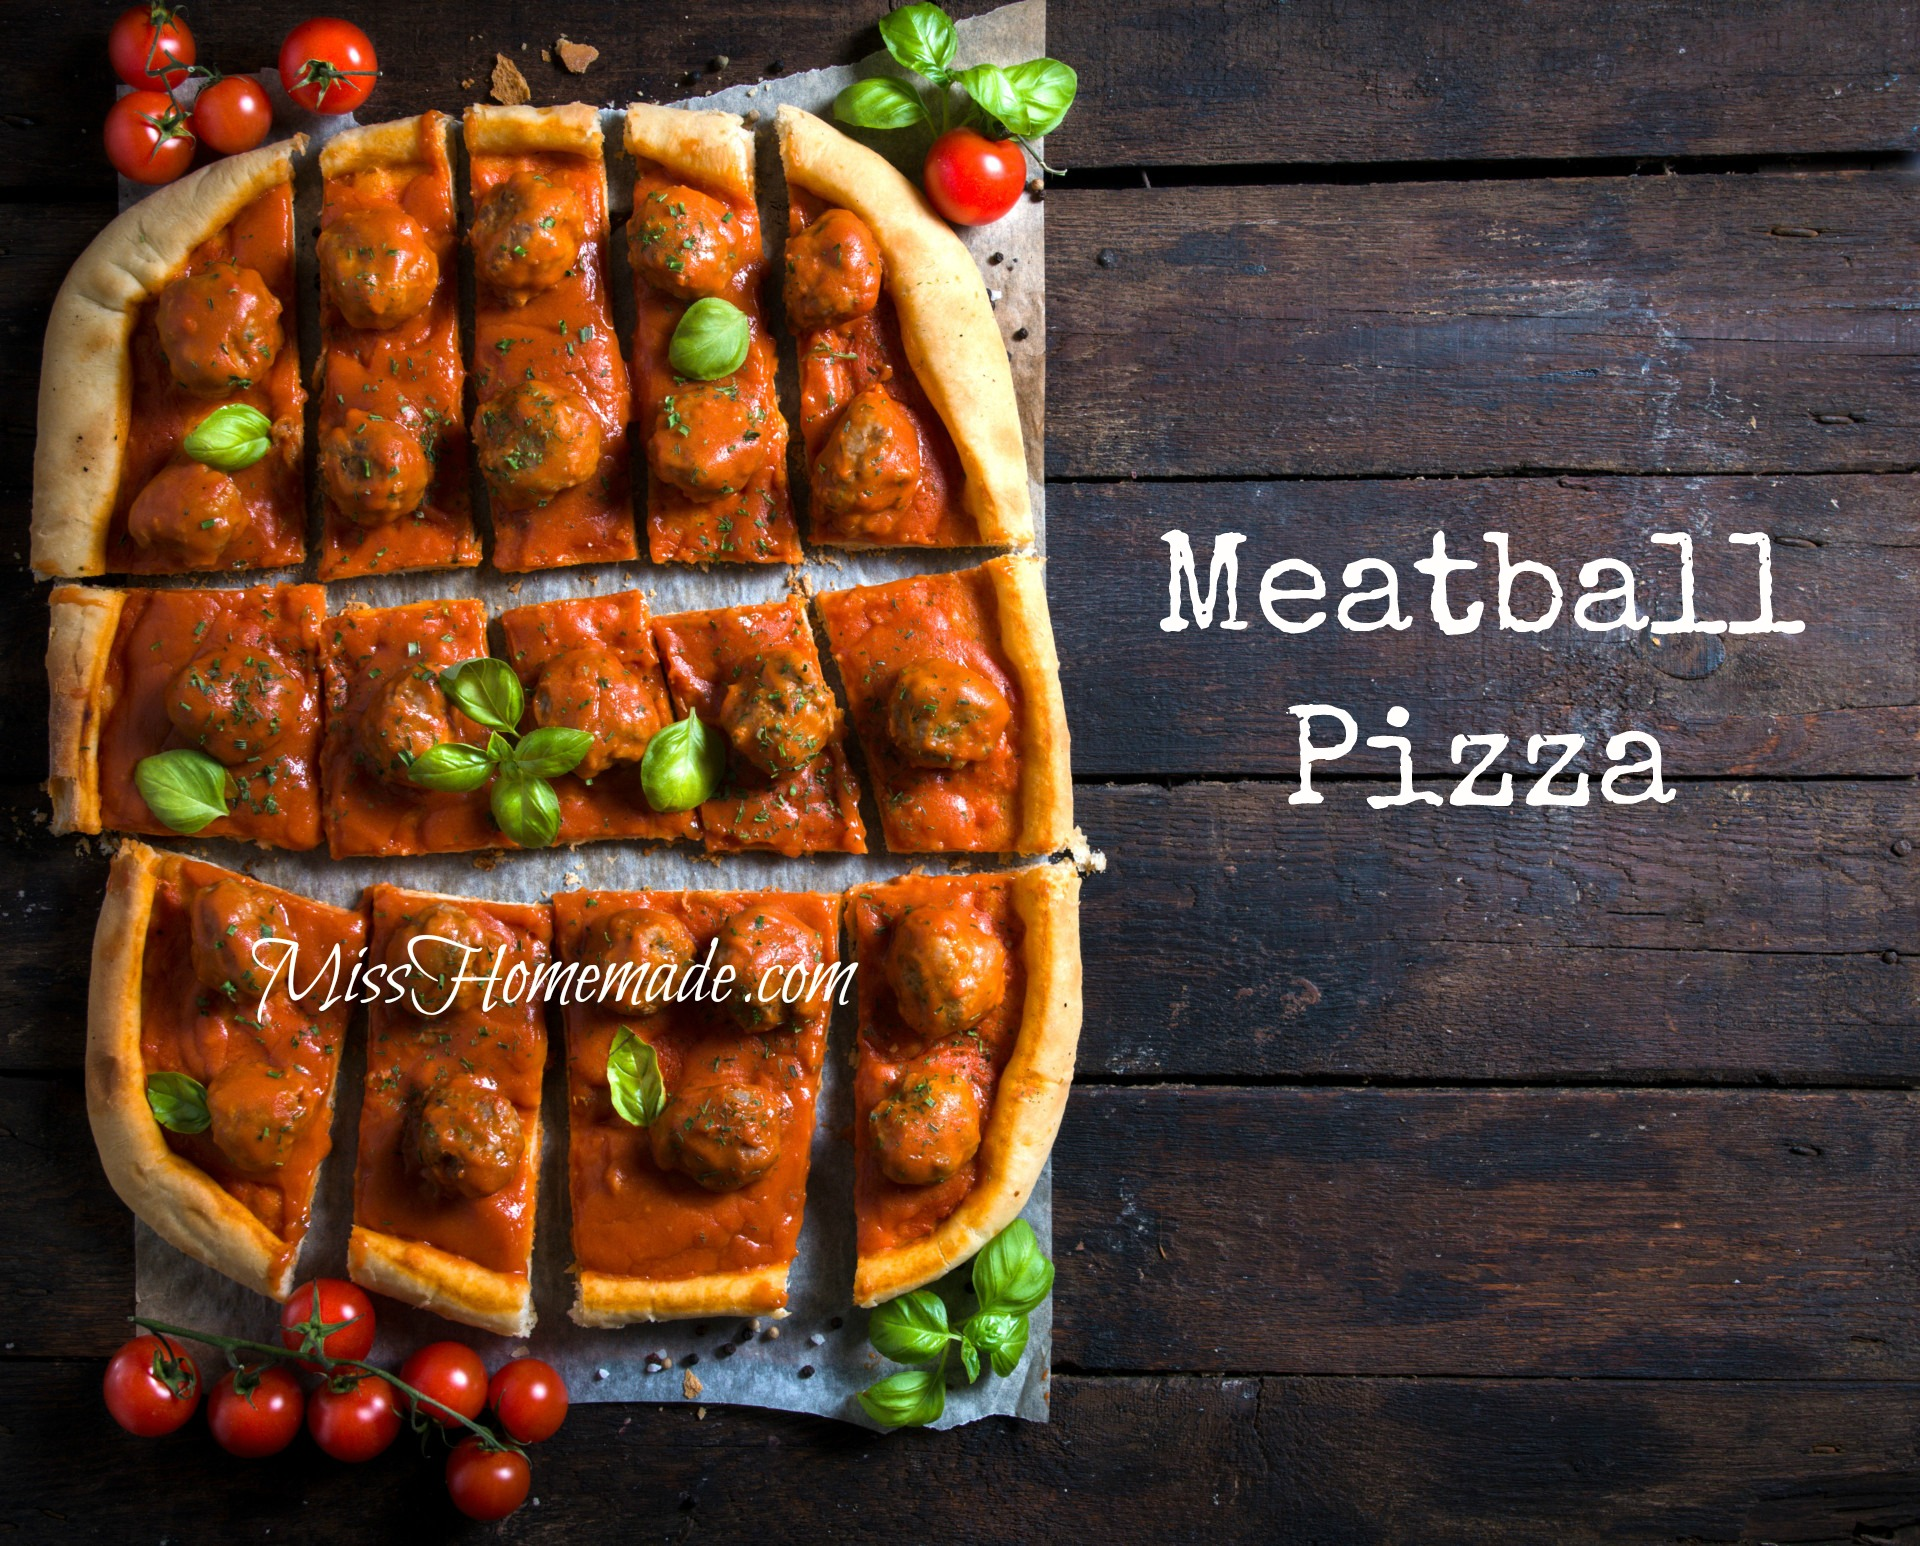 Meatball Pizza Recipe | MissHomemade.com